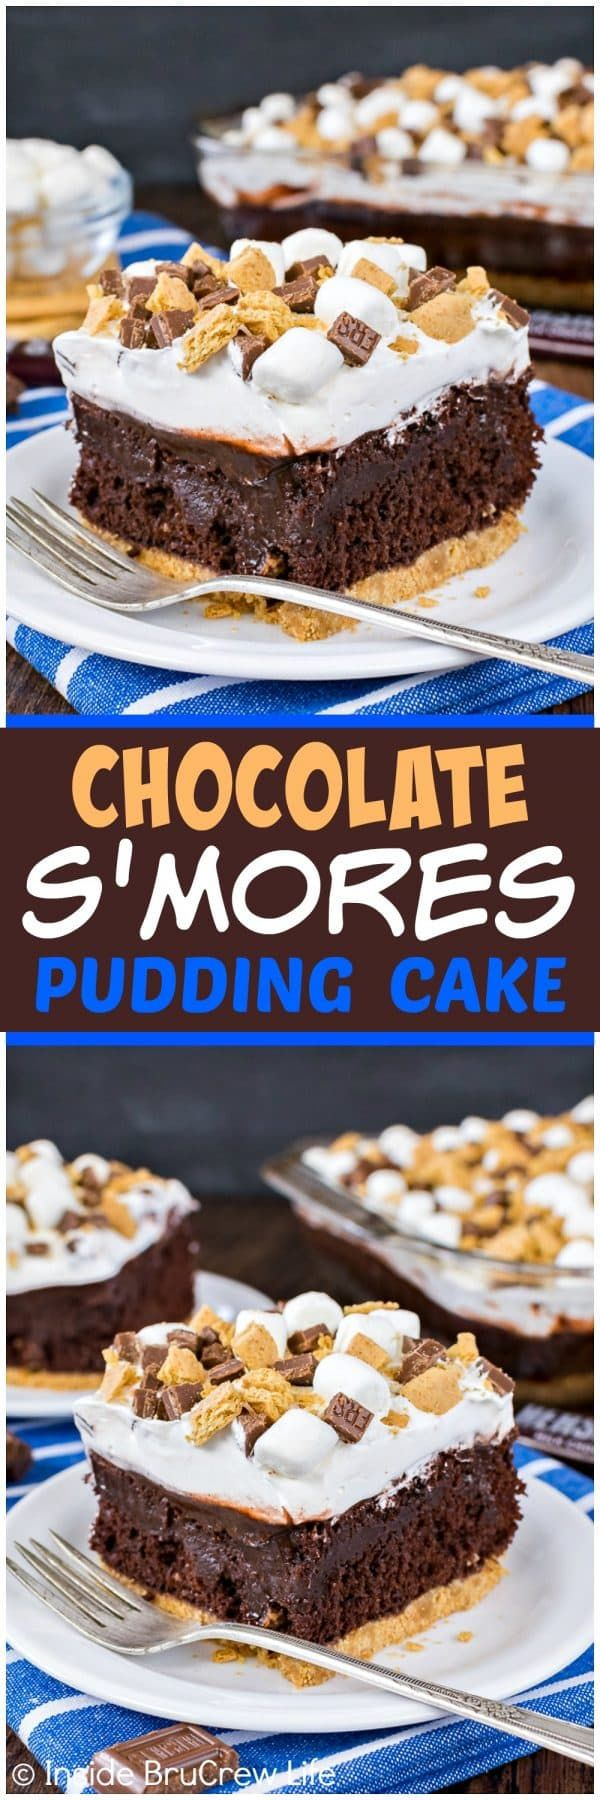 Chocolate S'mores Pudding Cake - chocolate pudding and a marshmallow topping make this gooey cake perfect for summer!  Easy and delicious recipe for picnics and parties!